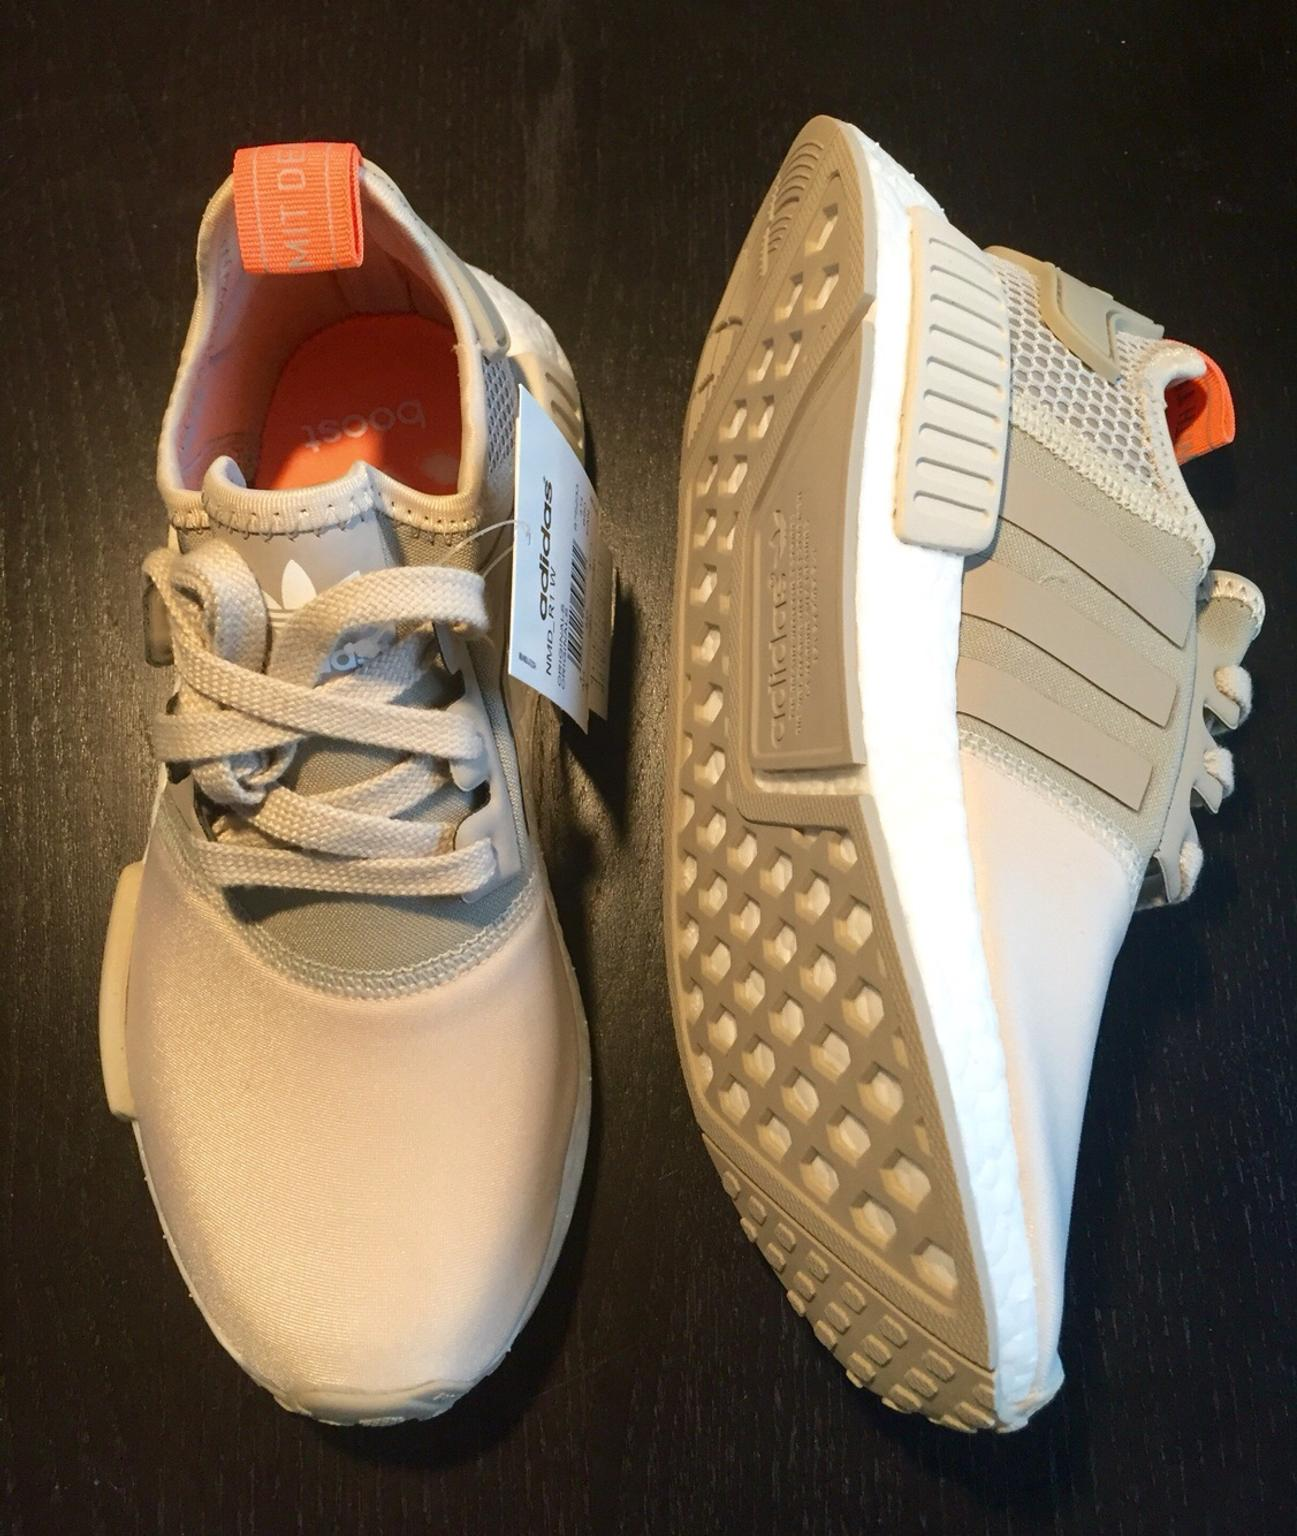 Adidas NMD Runner R1 W 37 clear brown light